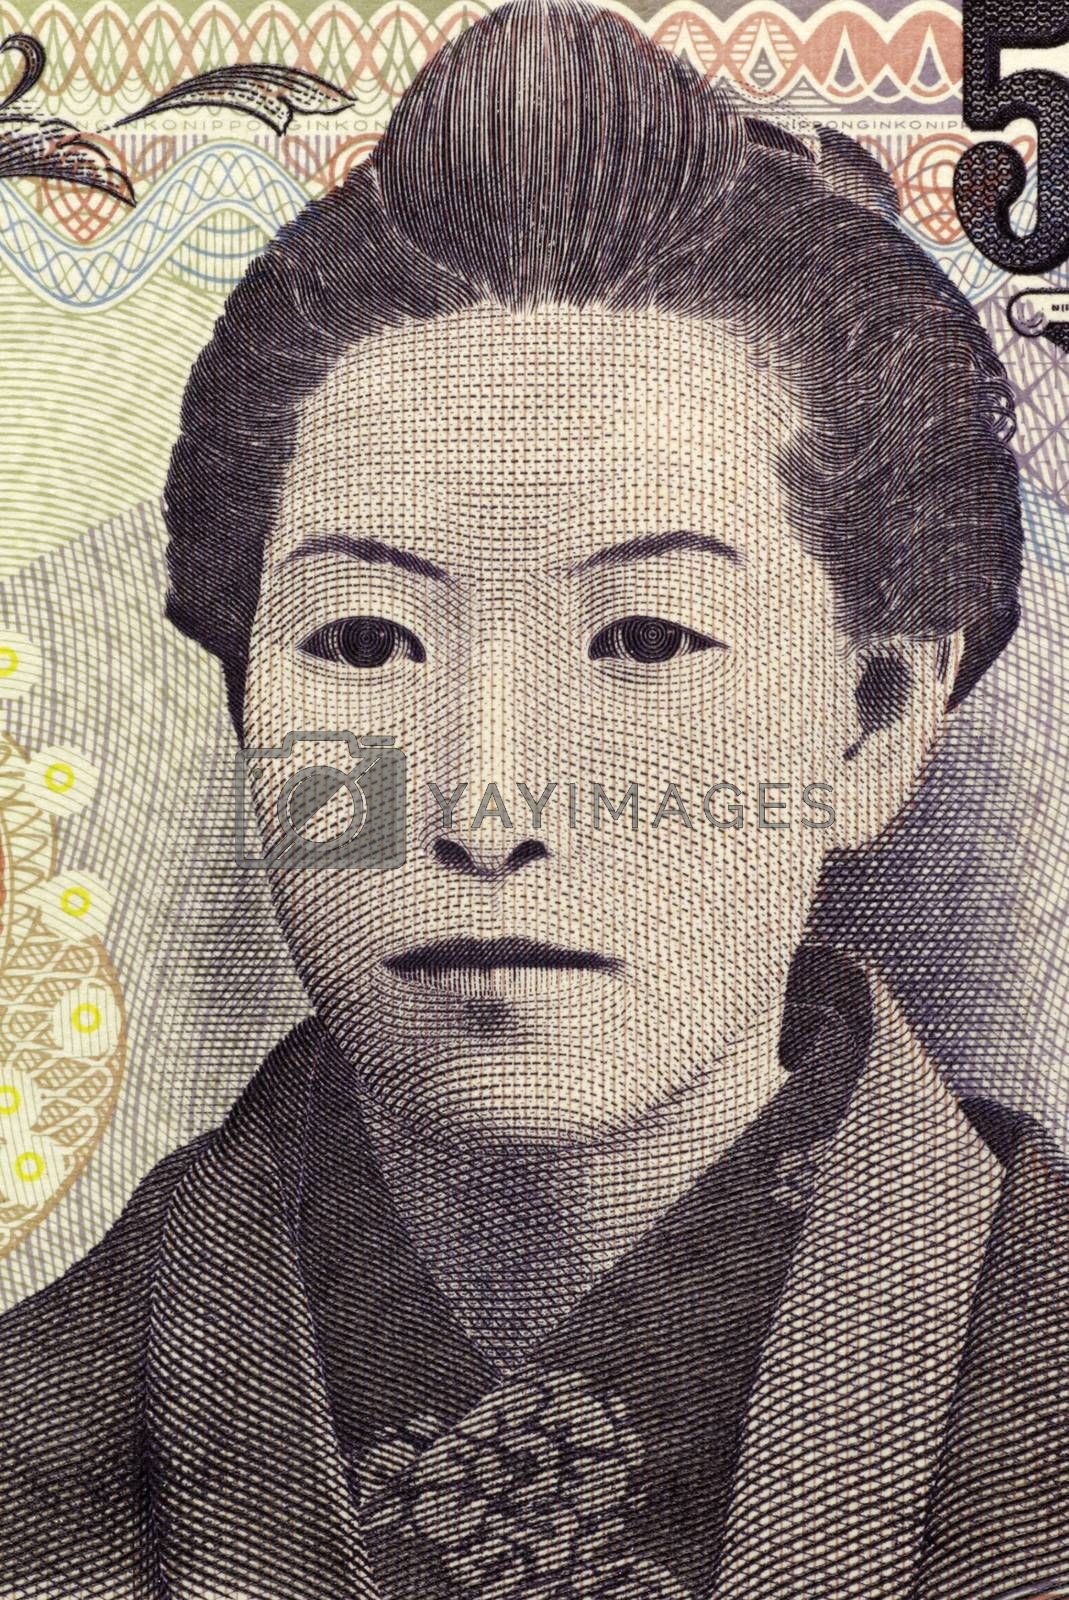 Ichiyo Higuchi (1872-1896) on 5000 Yen 2004 banknote from Japan. Japan's first prominent woman writer of modern times.